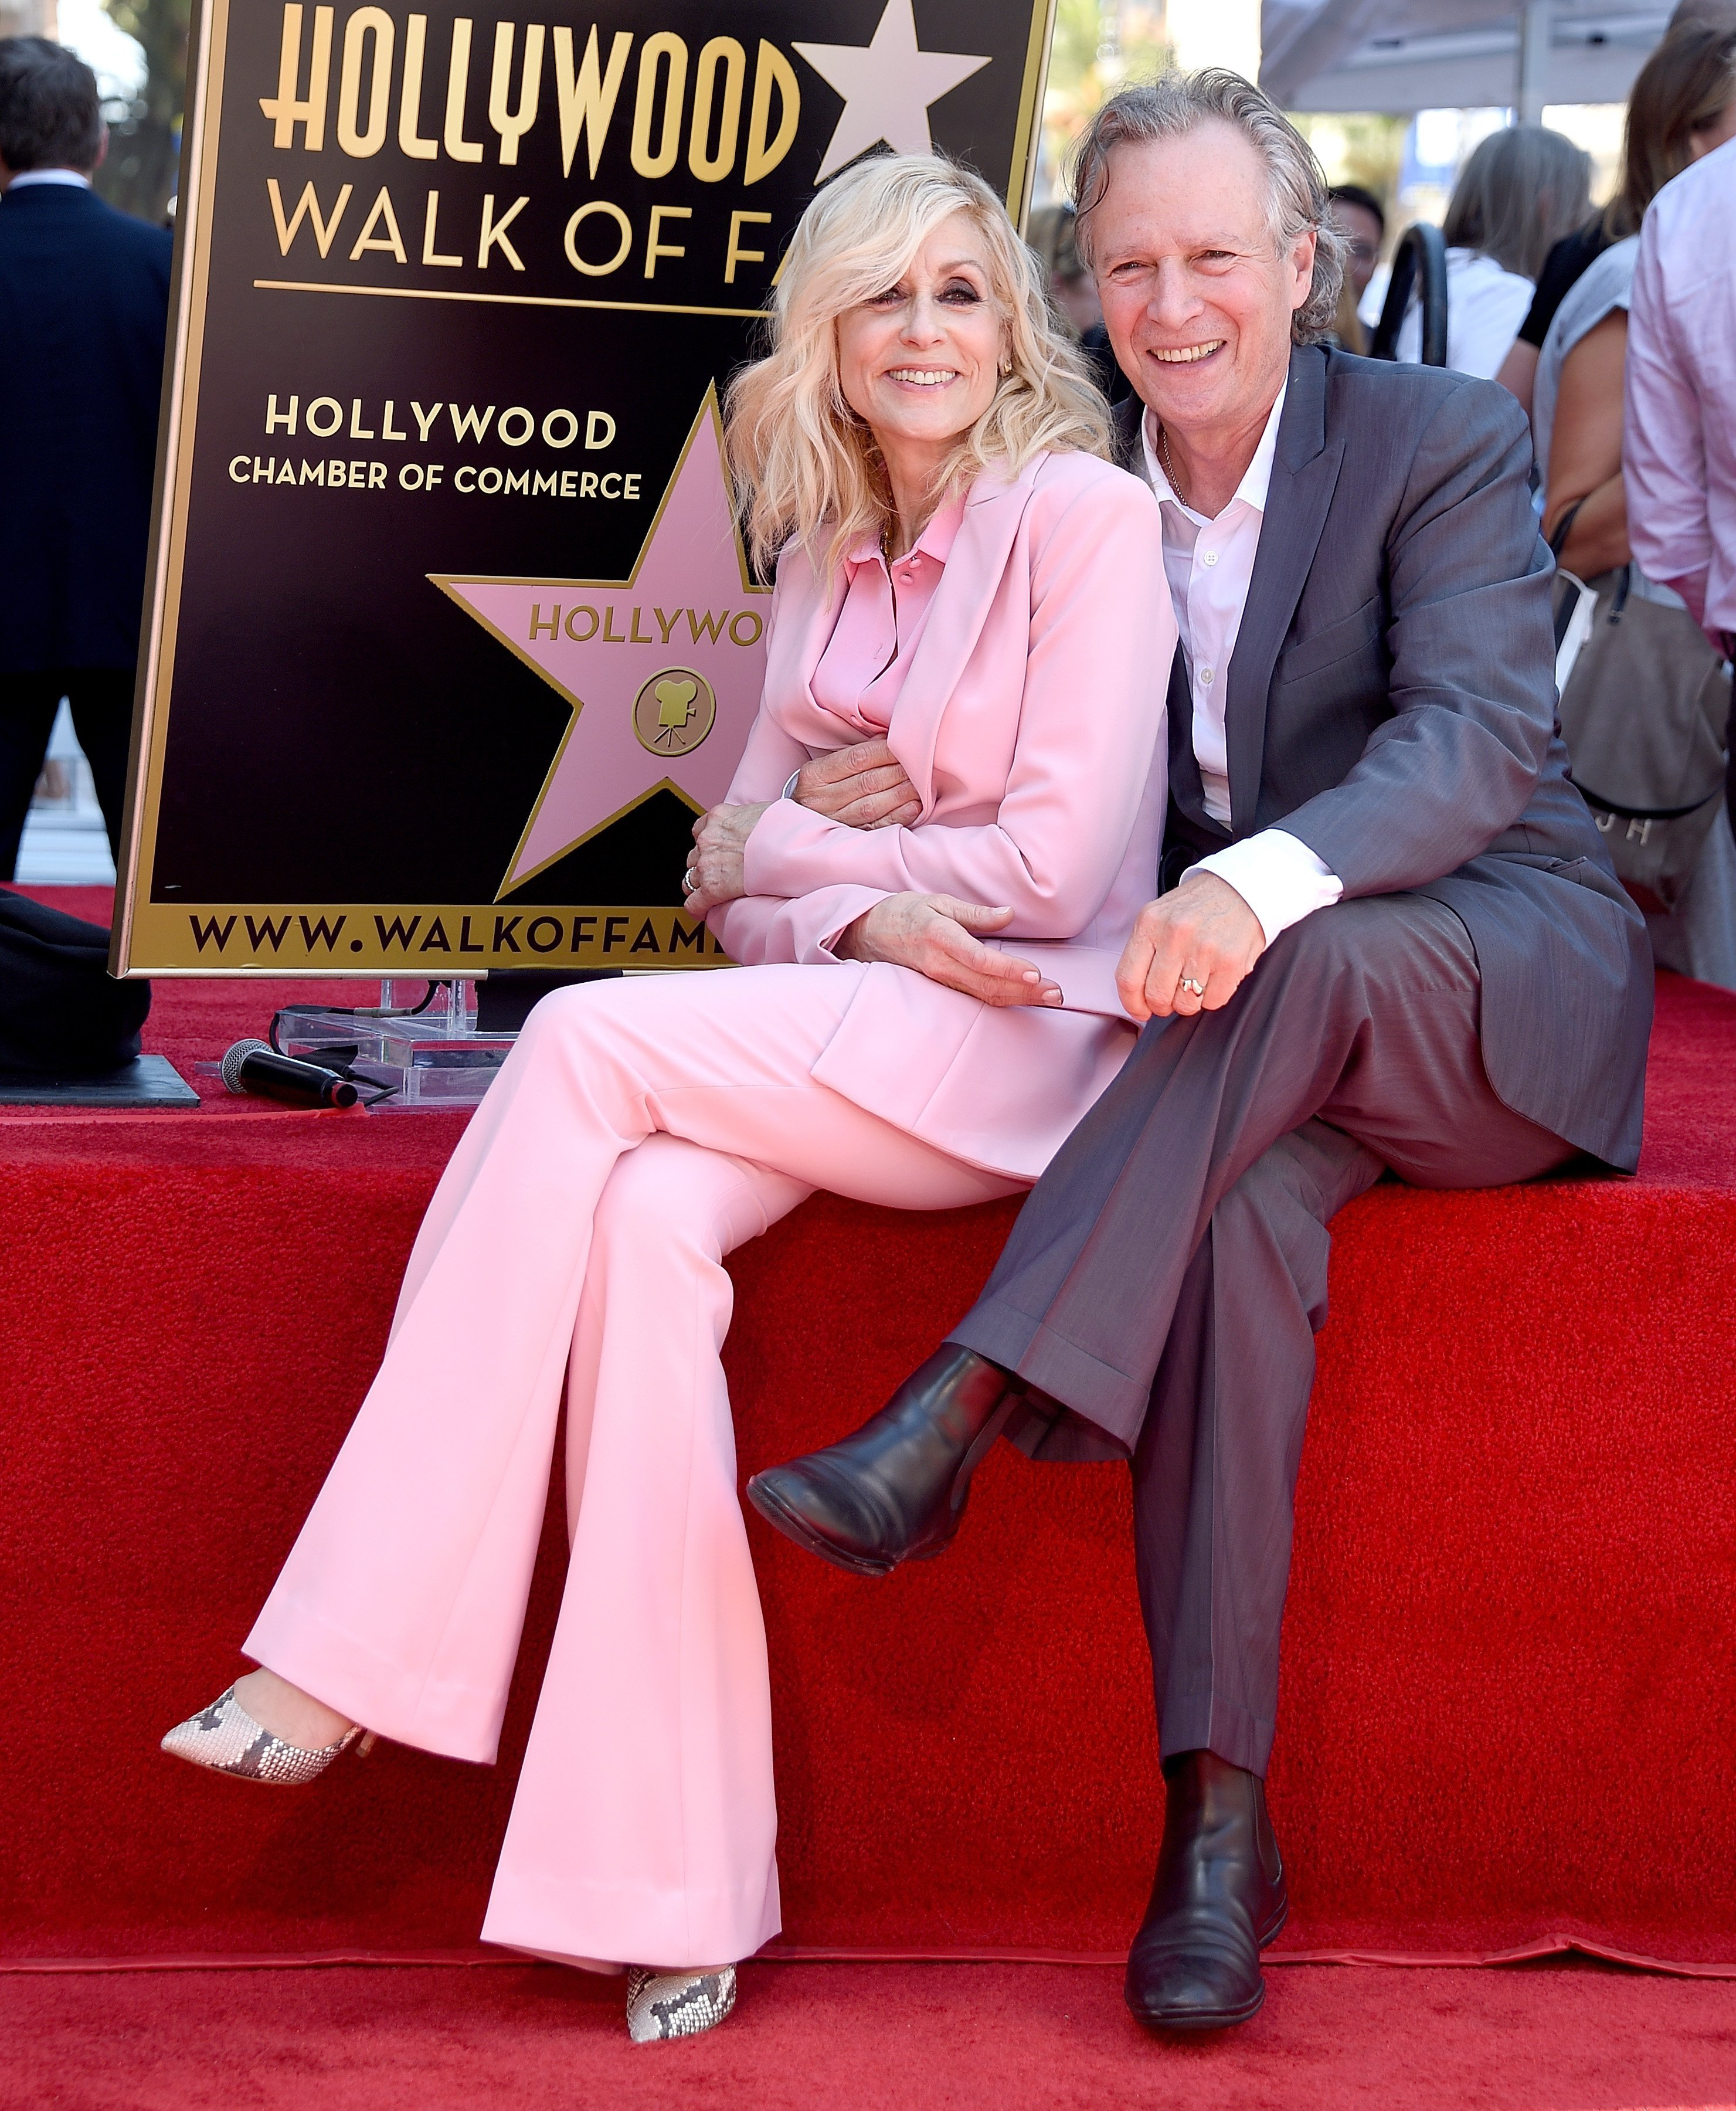 Judith Light and husband Robert Desiderio pose as Judith Light is Honored With A Star On The Hollywood Walk Of Fame on September 12, 2019, in Hollywood, California.   Source: Getty Images.